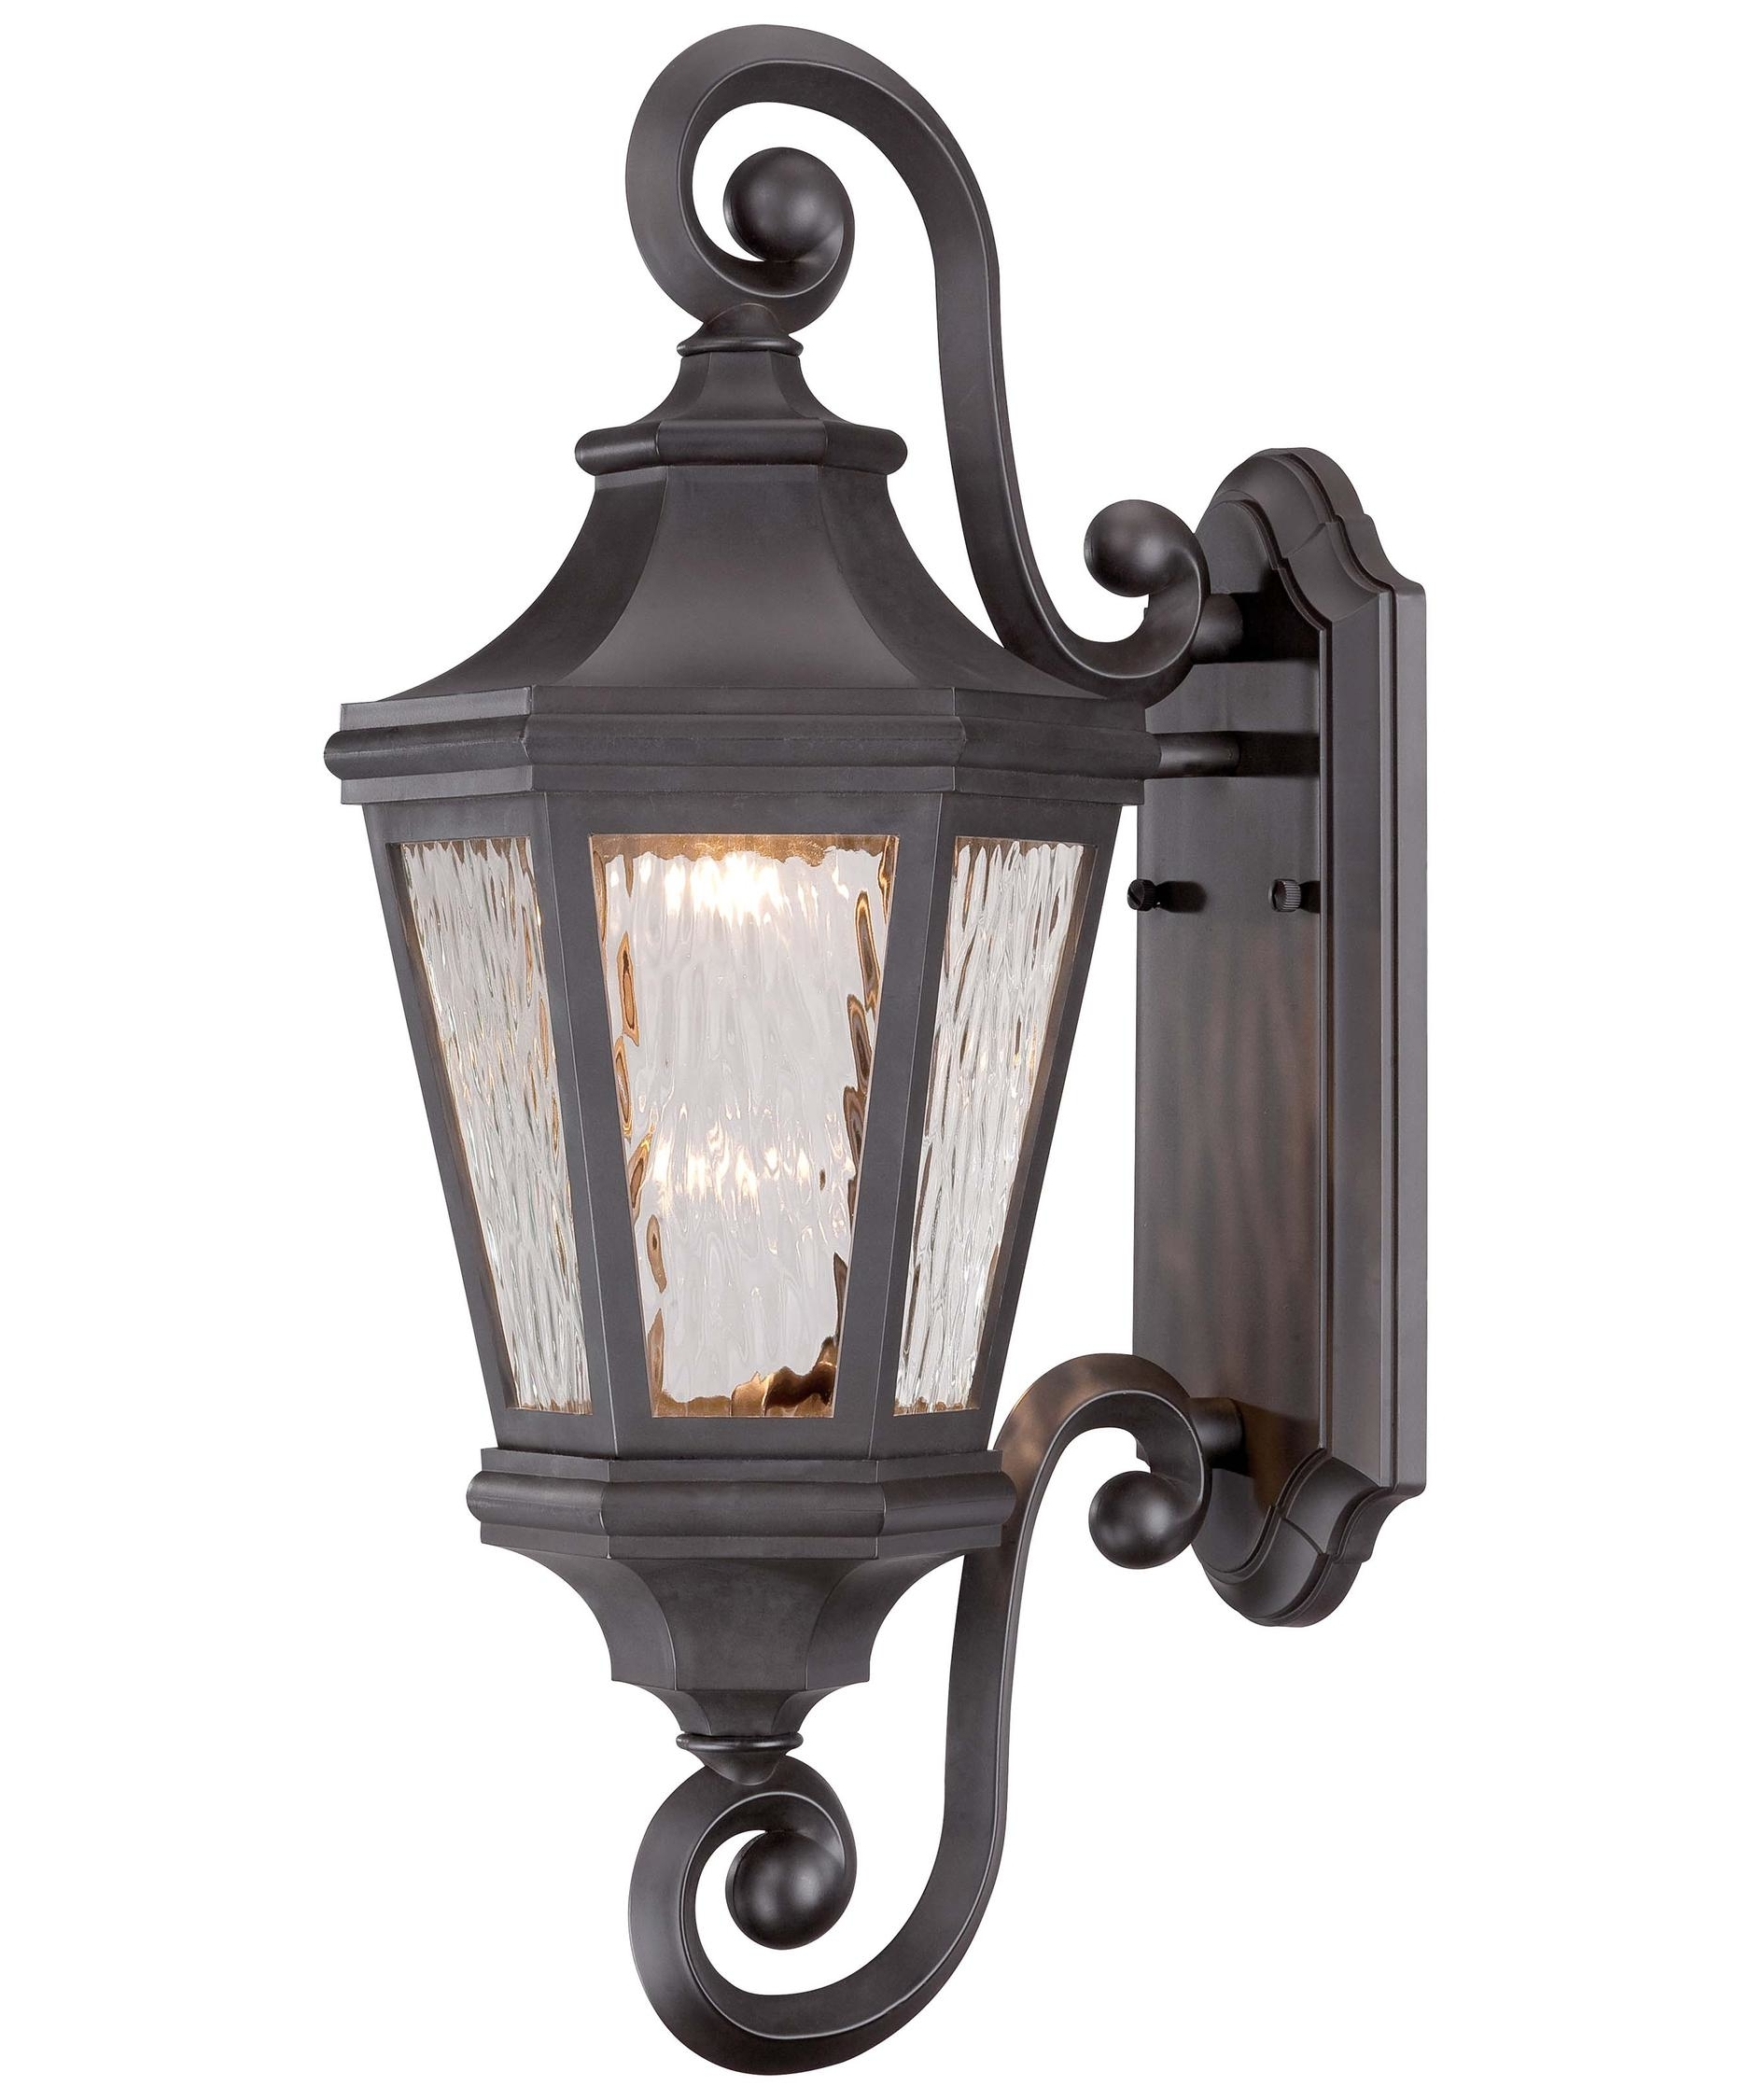 Buy The Brynmar Extra Large Outdoor Wall Sconce Outdoor Fixtures For 2019 Outdoor Wall Lighting At Houzz (View 5 of 20)